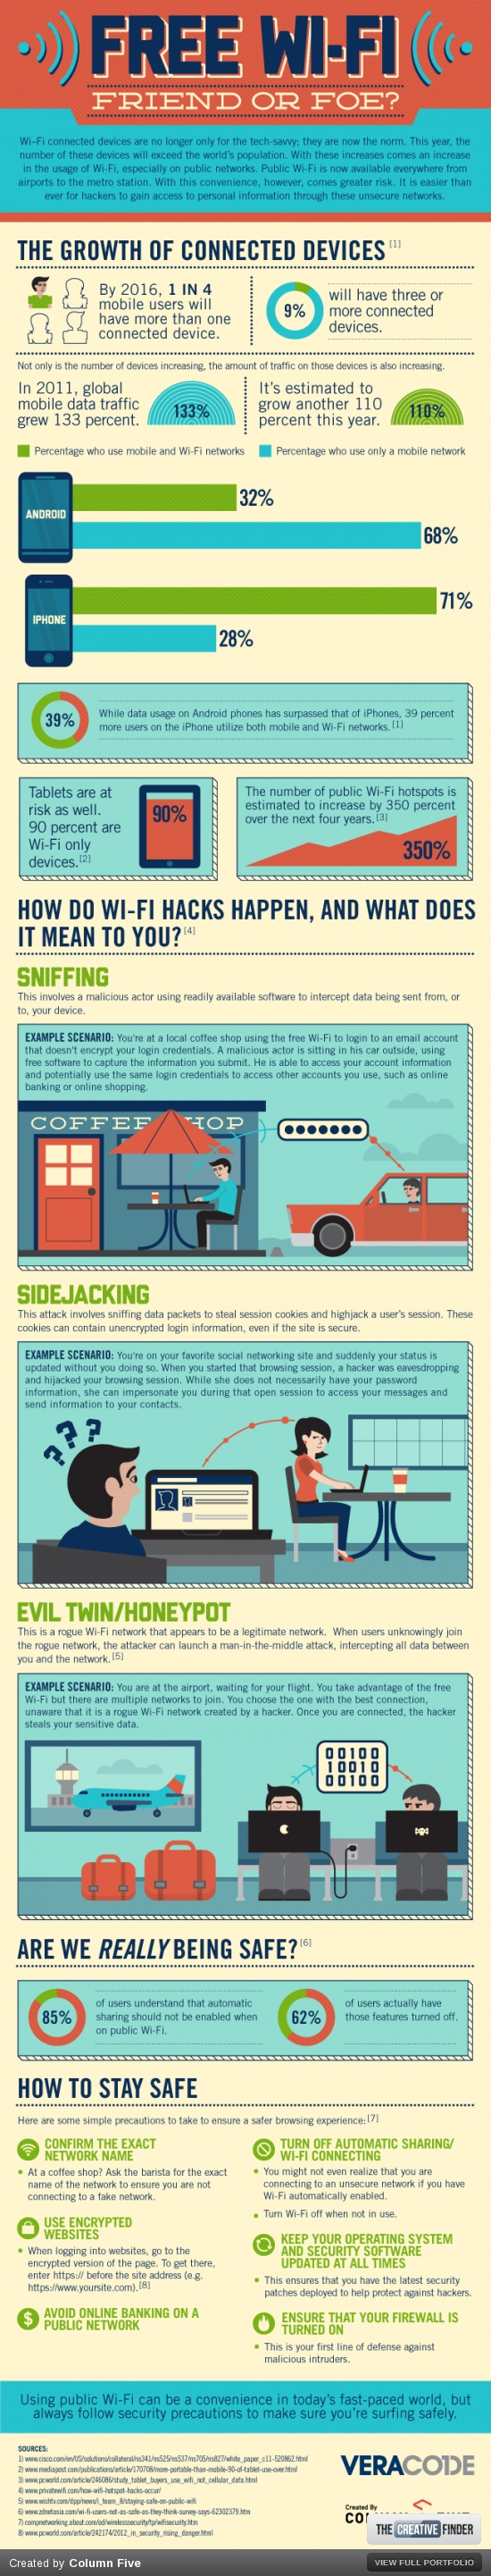 An informative infographic about the potential dangers of public WiFi